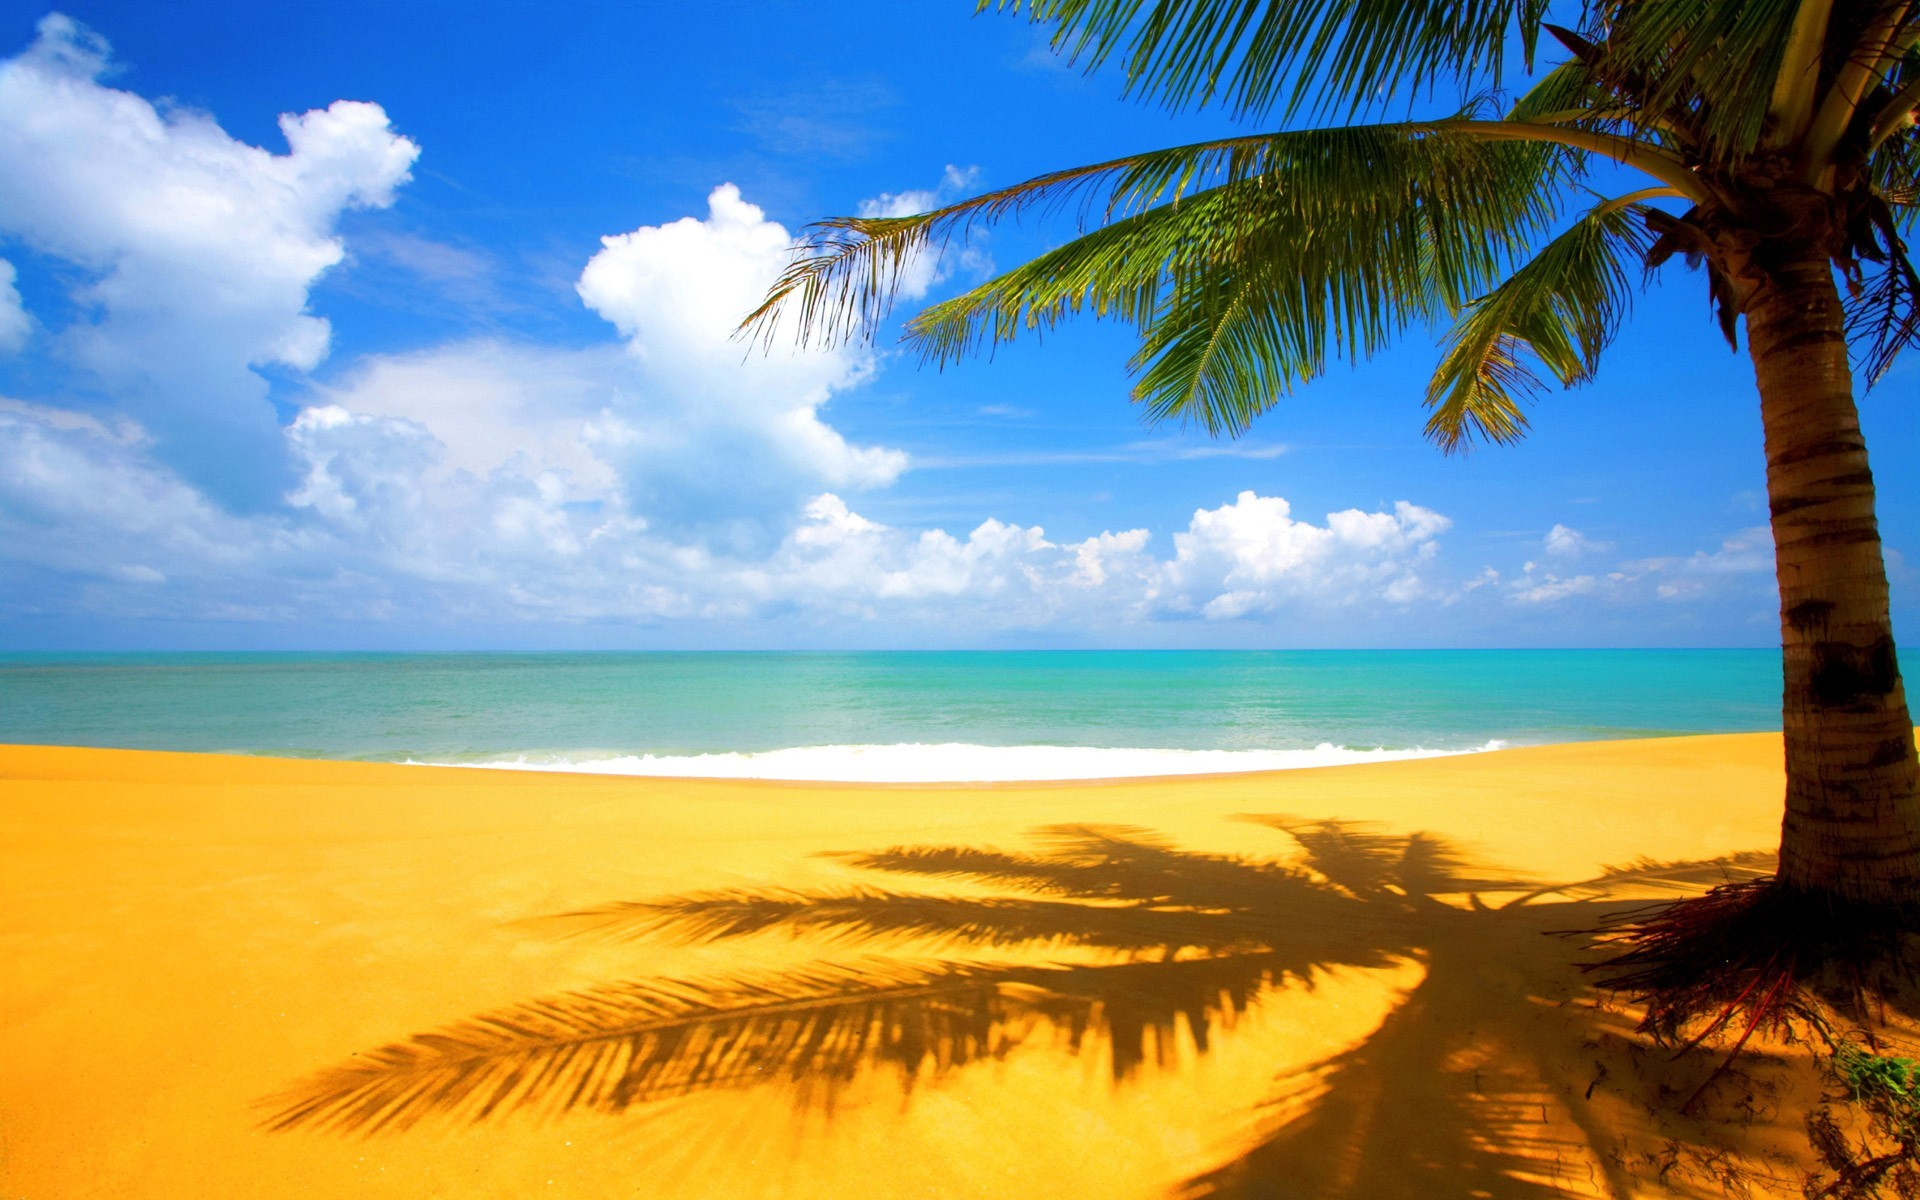 10 Best Animated Chrome Beach Desktop Wallpapers For - Beach Background With Palm Trees - HD Wallpaper